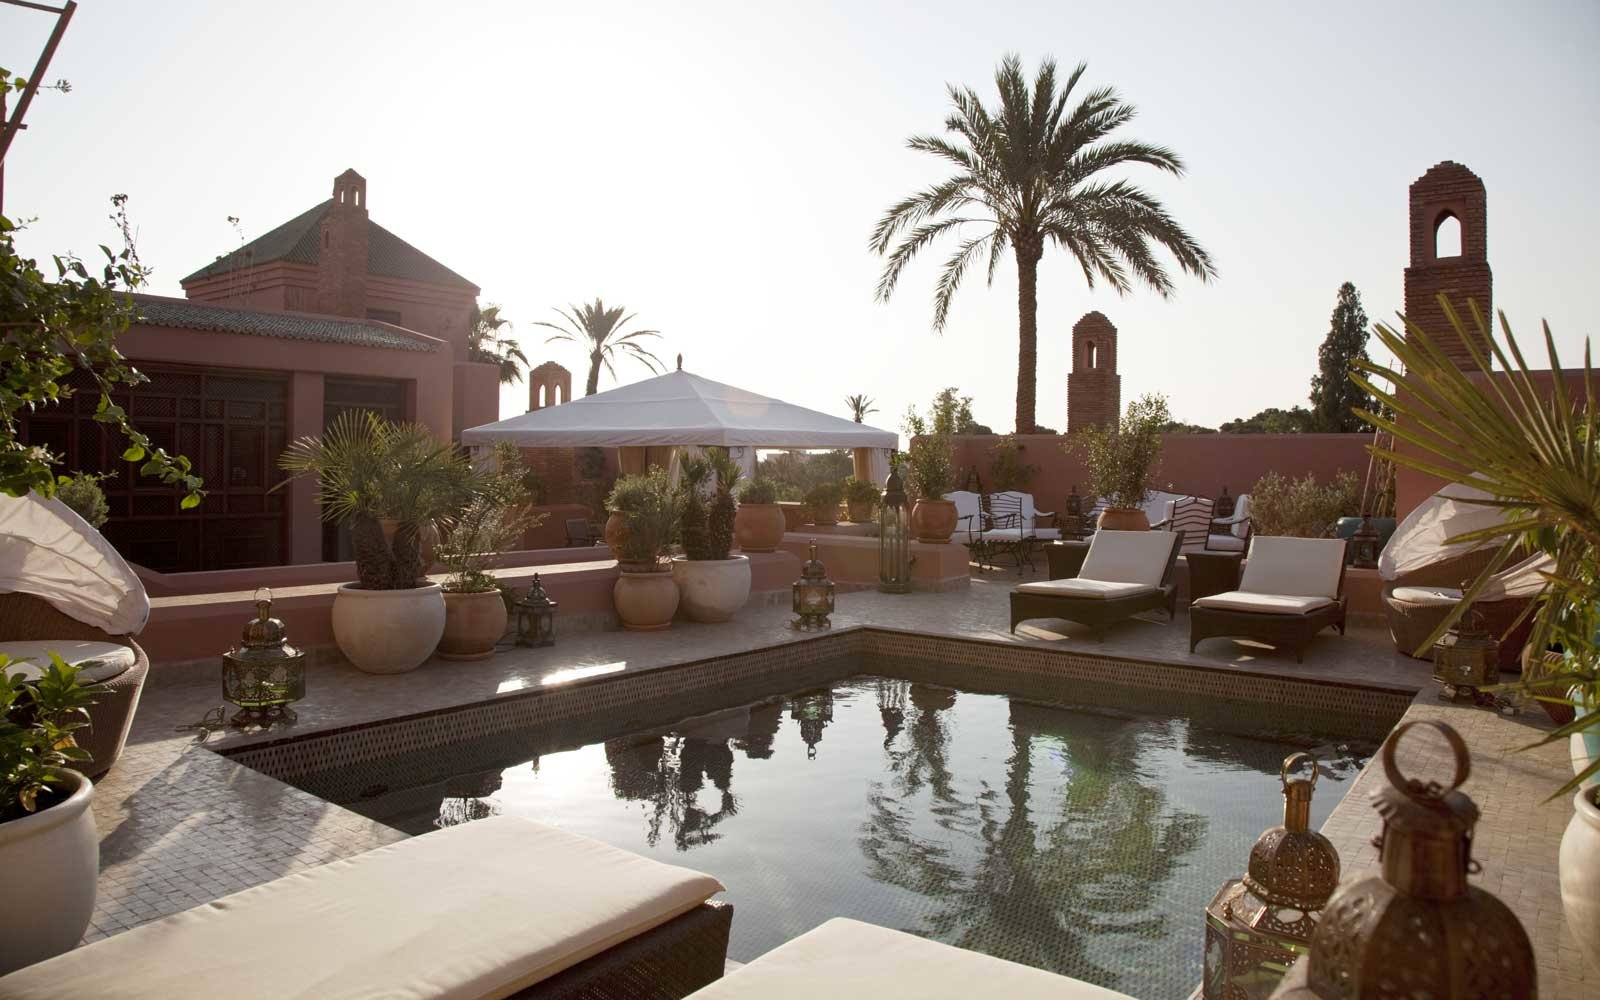 Pool at the Royal Mansour Hotel in Marrakech, Morocco